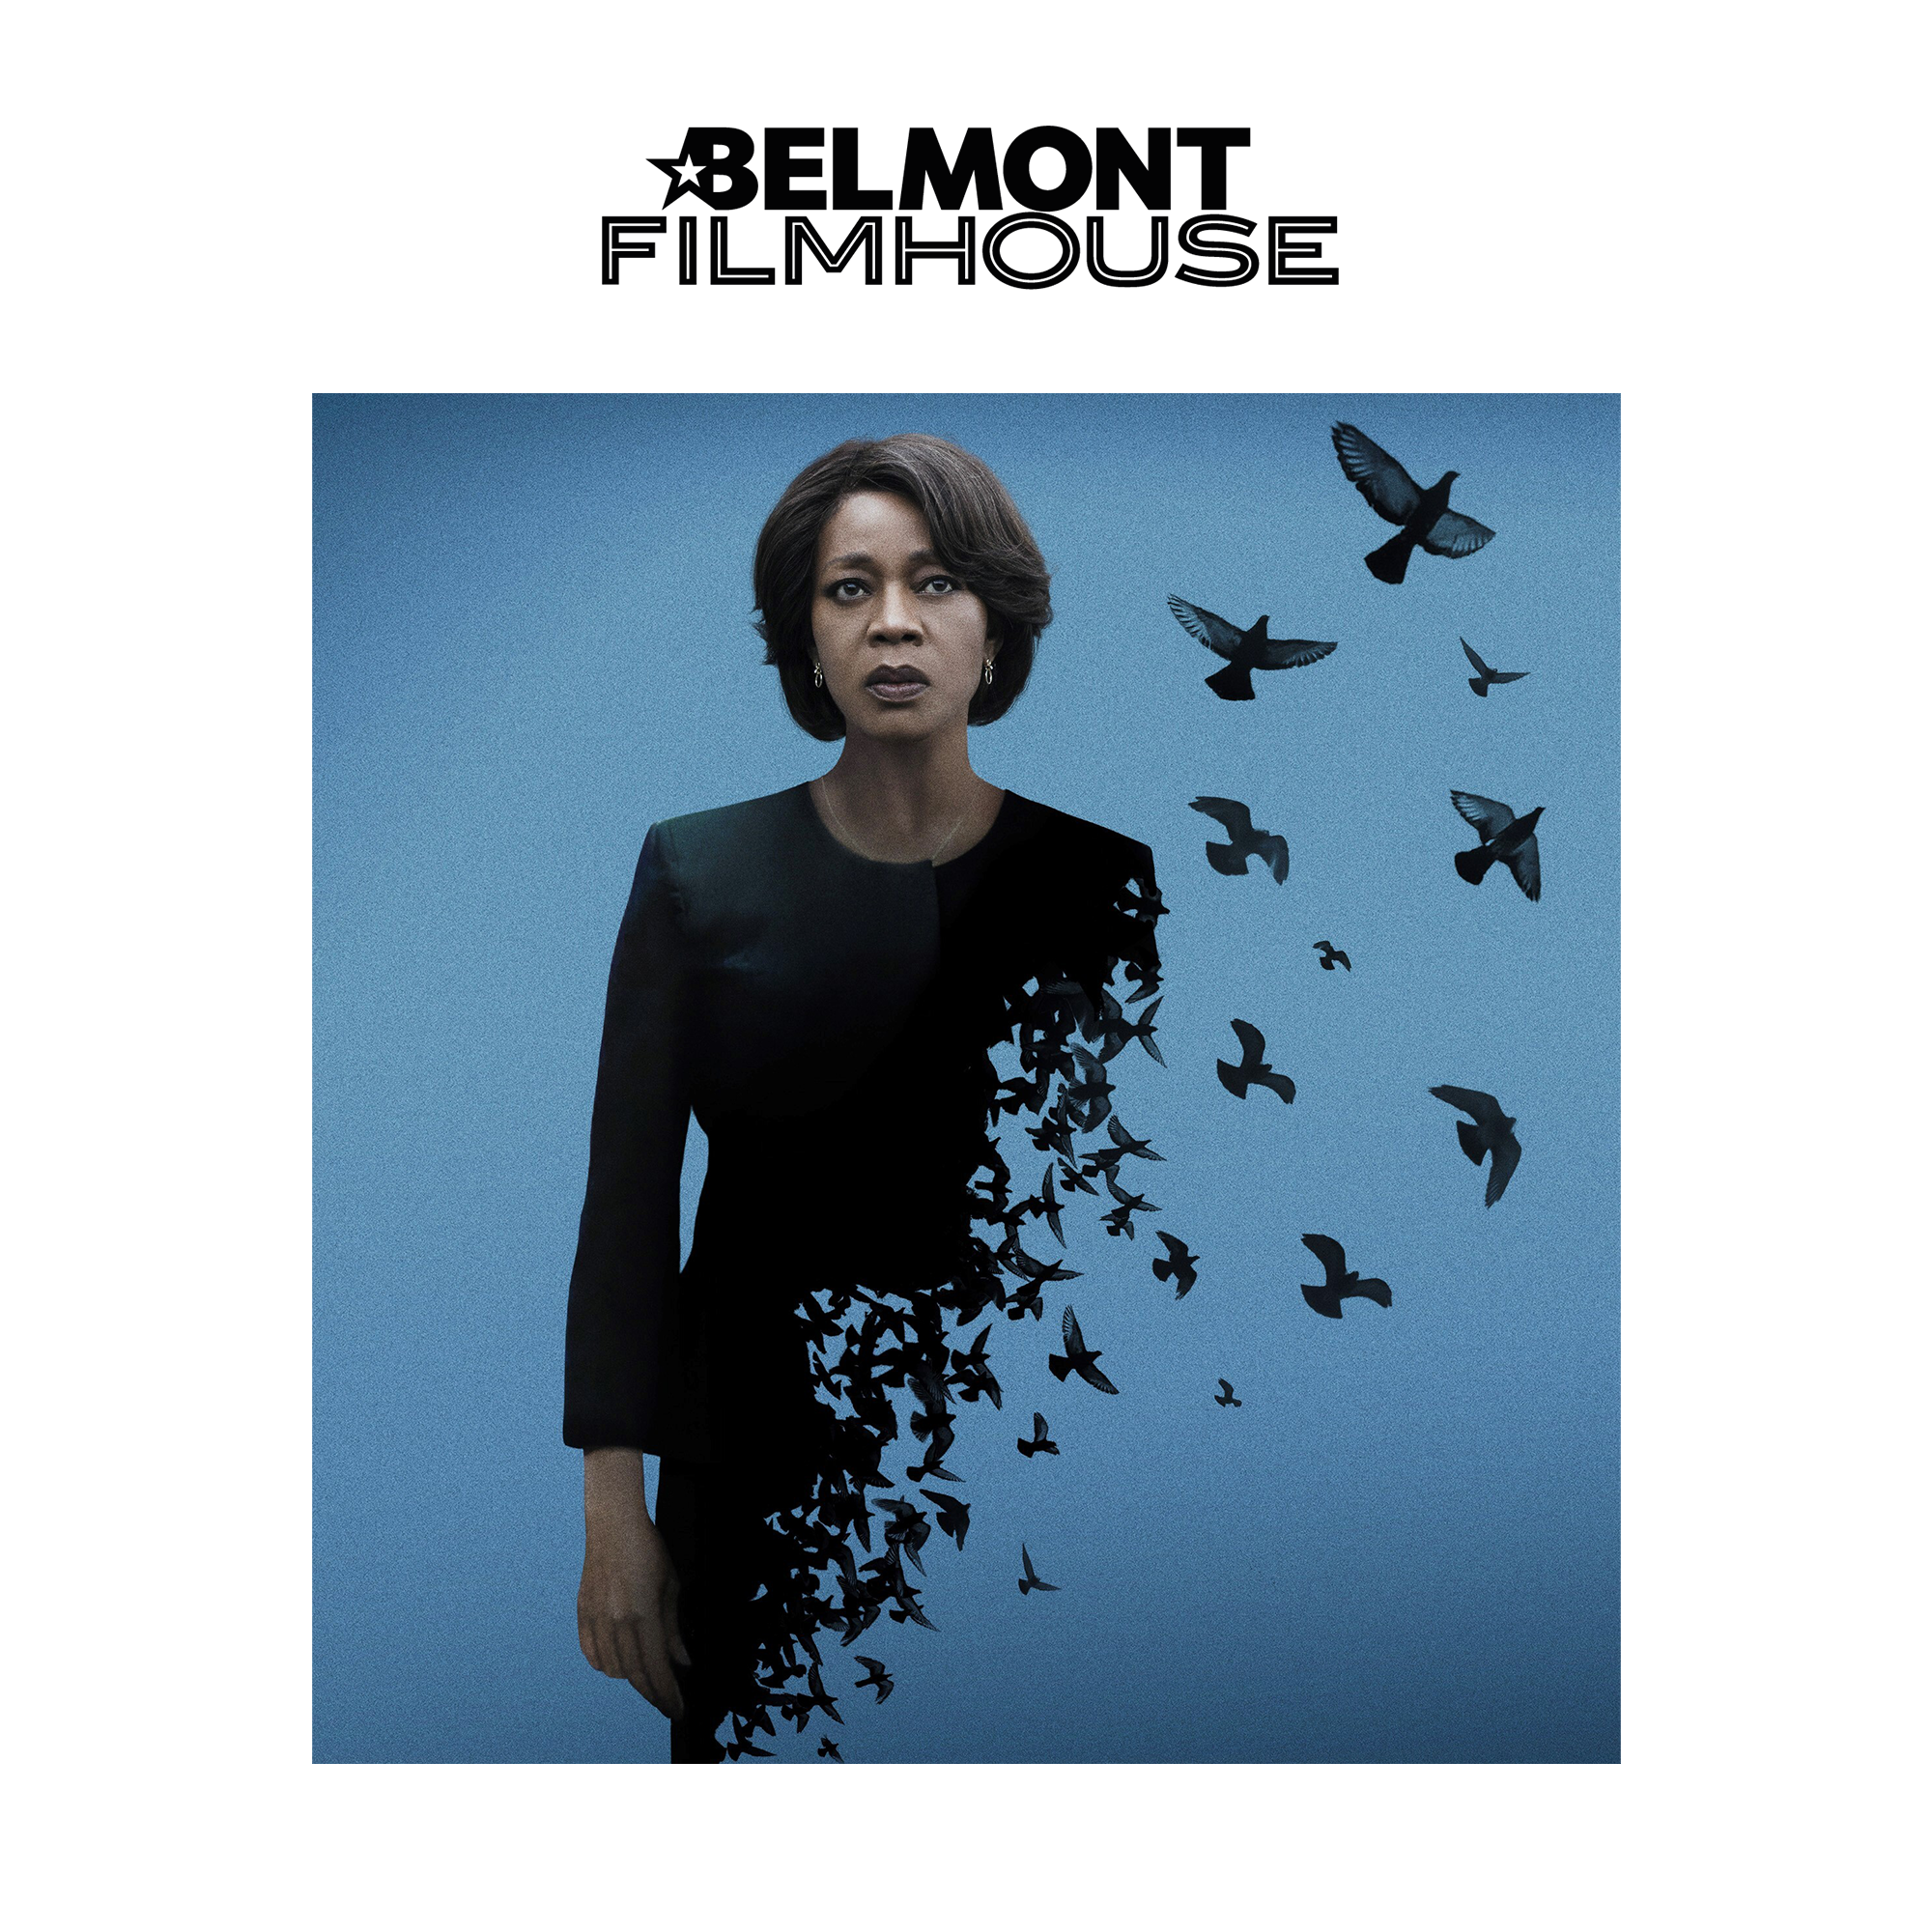 Clemency at Belmont Filmhouse